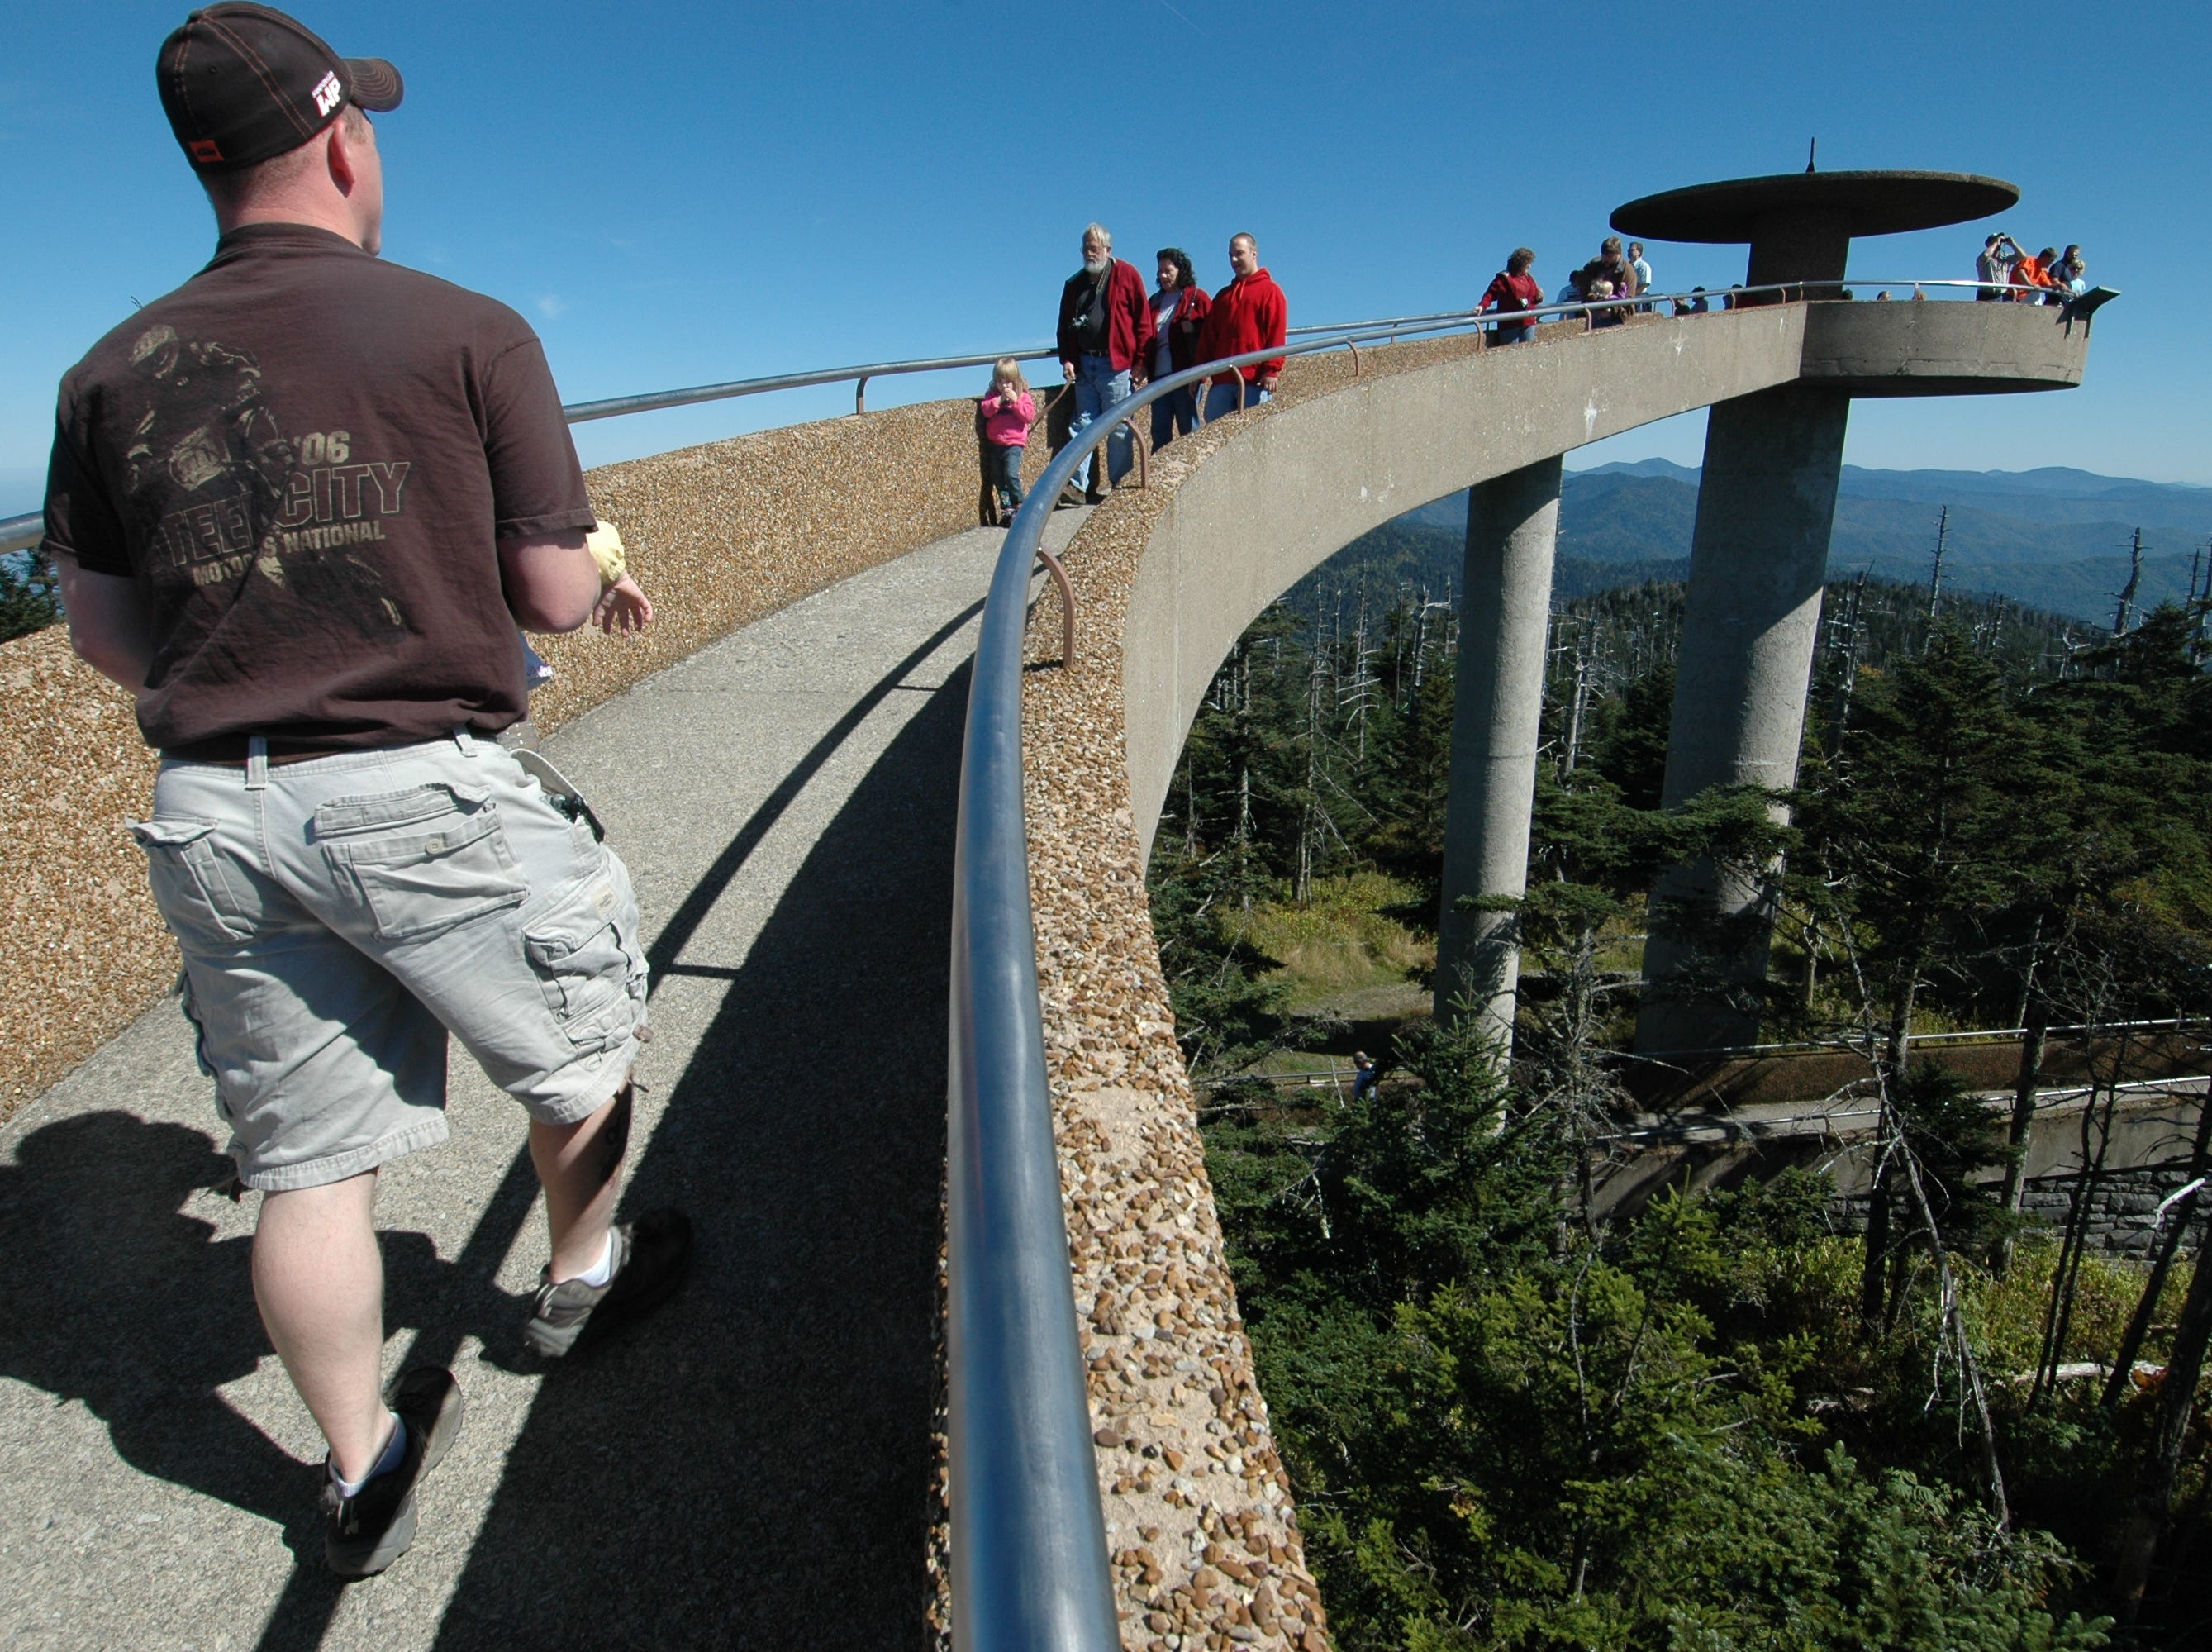 The observation platform and walkway atop Clingmans Dome in the Great Smoky Mountains National Park provides visitors an unequaled 360-degree view of the park and the region. At 6,643 feet above sea-level, it is the highest point in the park and the third-highest peak east of the Mississippi. Filel photo from Sunday, Sept. 30, 2007